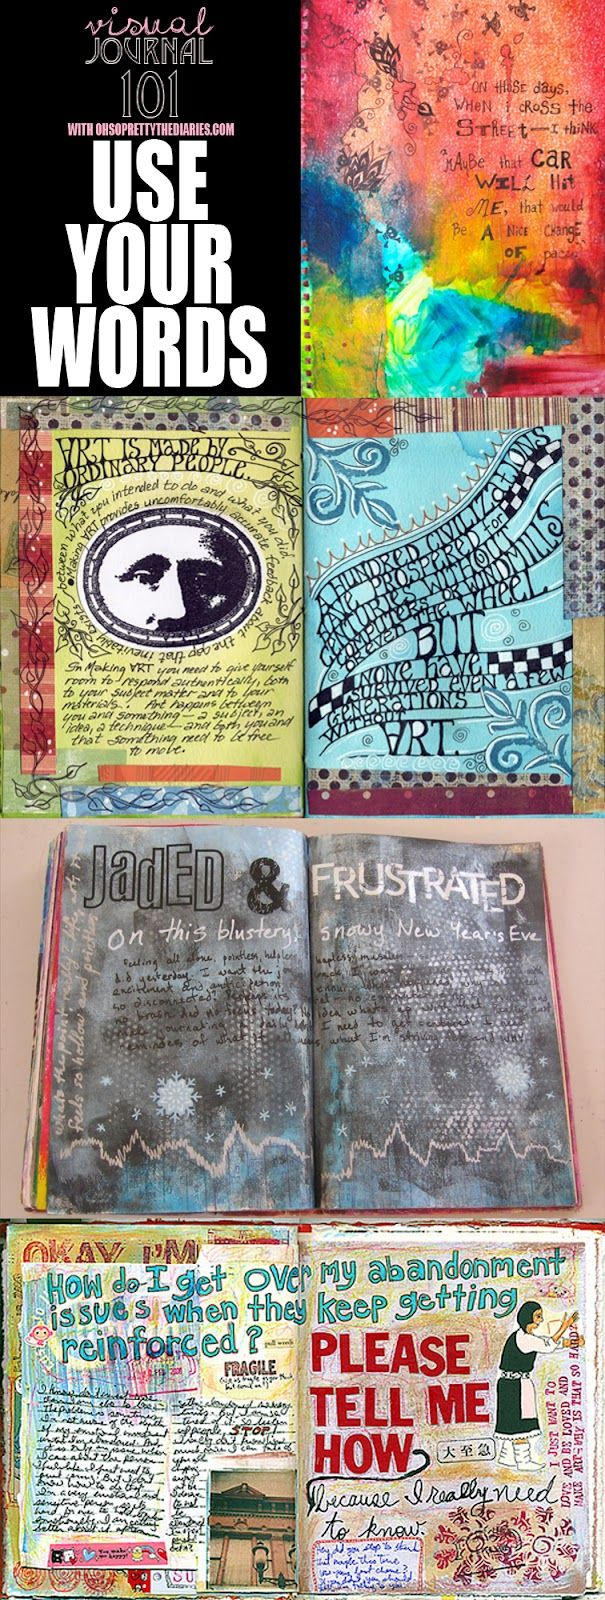 visual journal Remember,visual journals have:•drawings•collage•recycled papers•colour•decorative elements•text etc 18 take the time to do good work and it will showapply the techniques learnt in class.